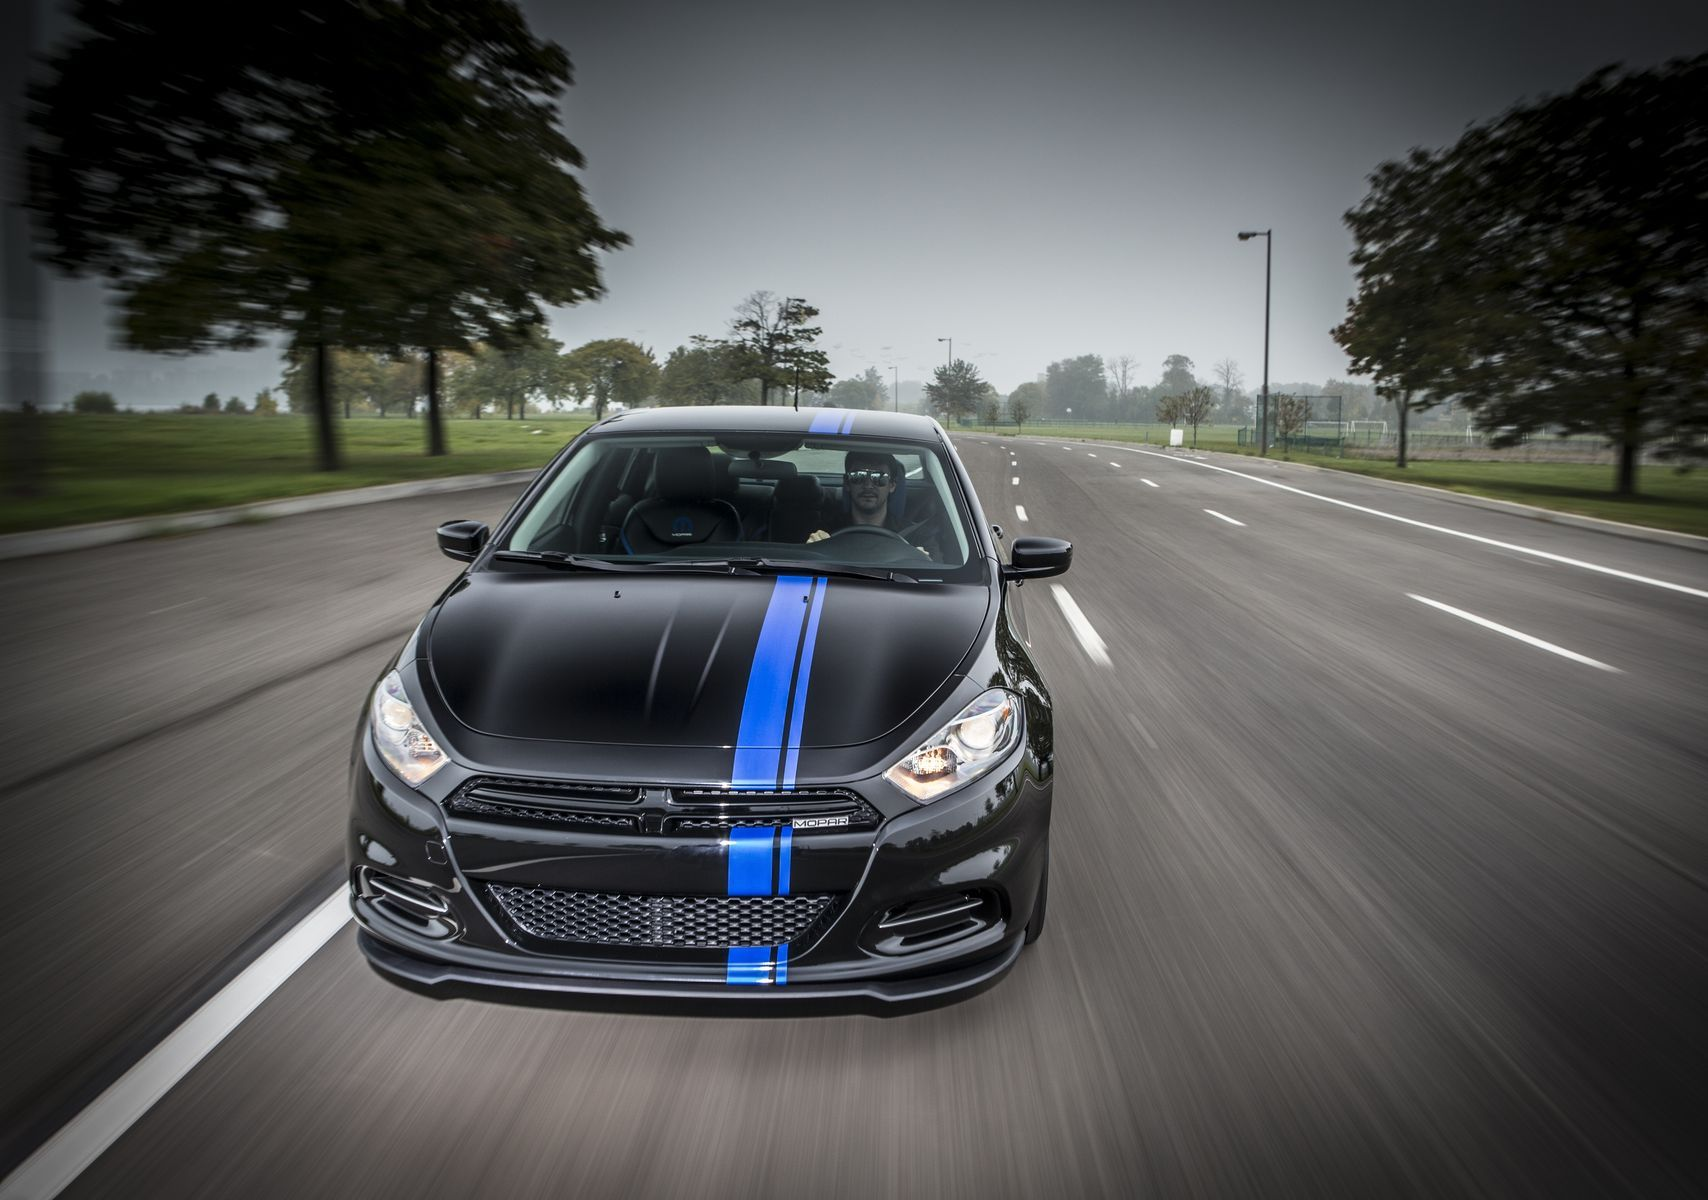 2013 Dodge Dart | 2013 Mopar Edition Dodge Dart